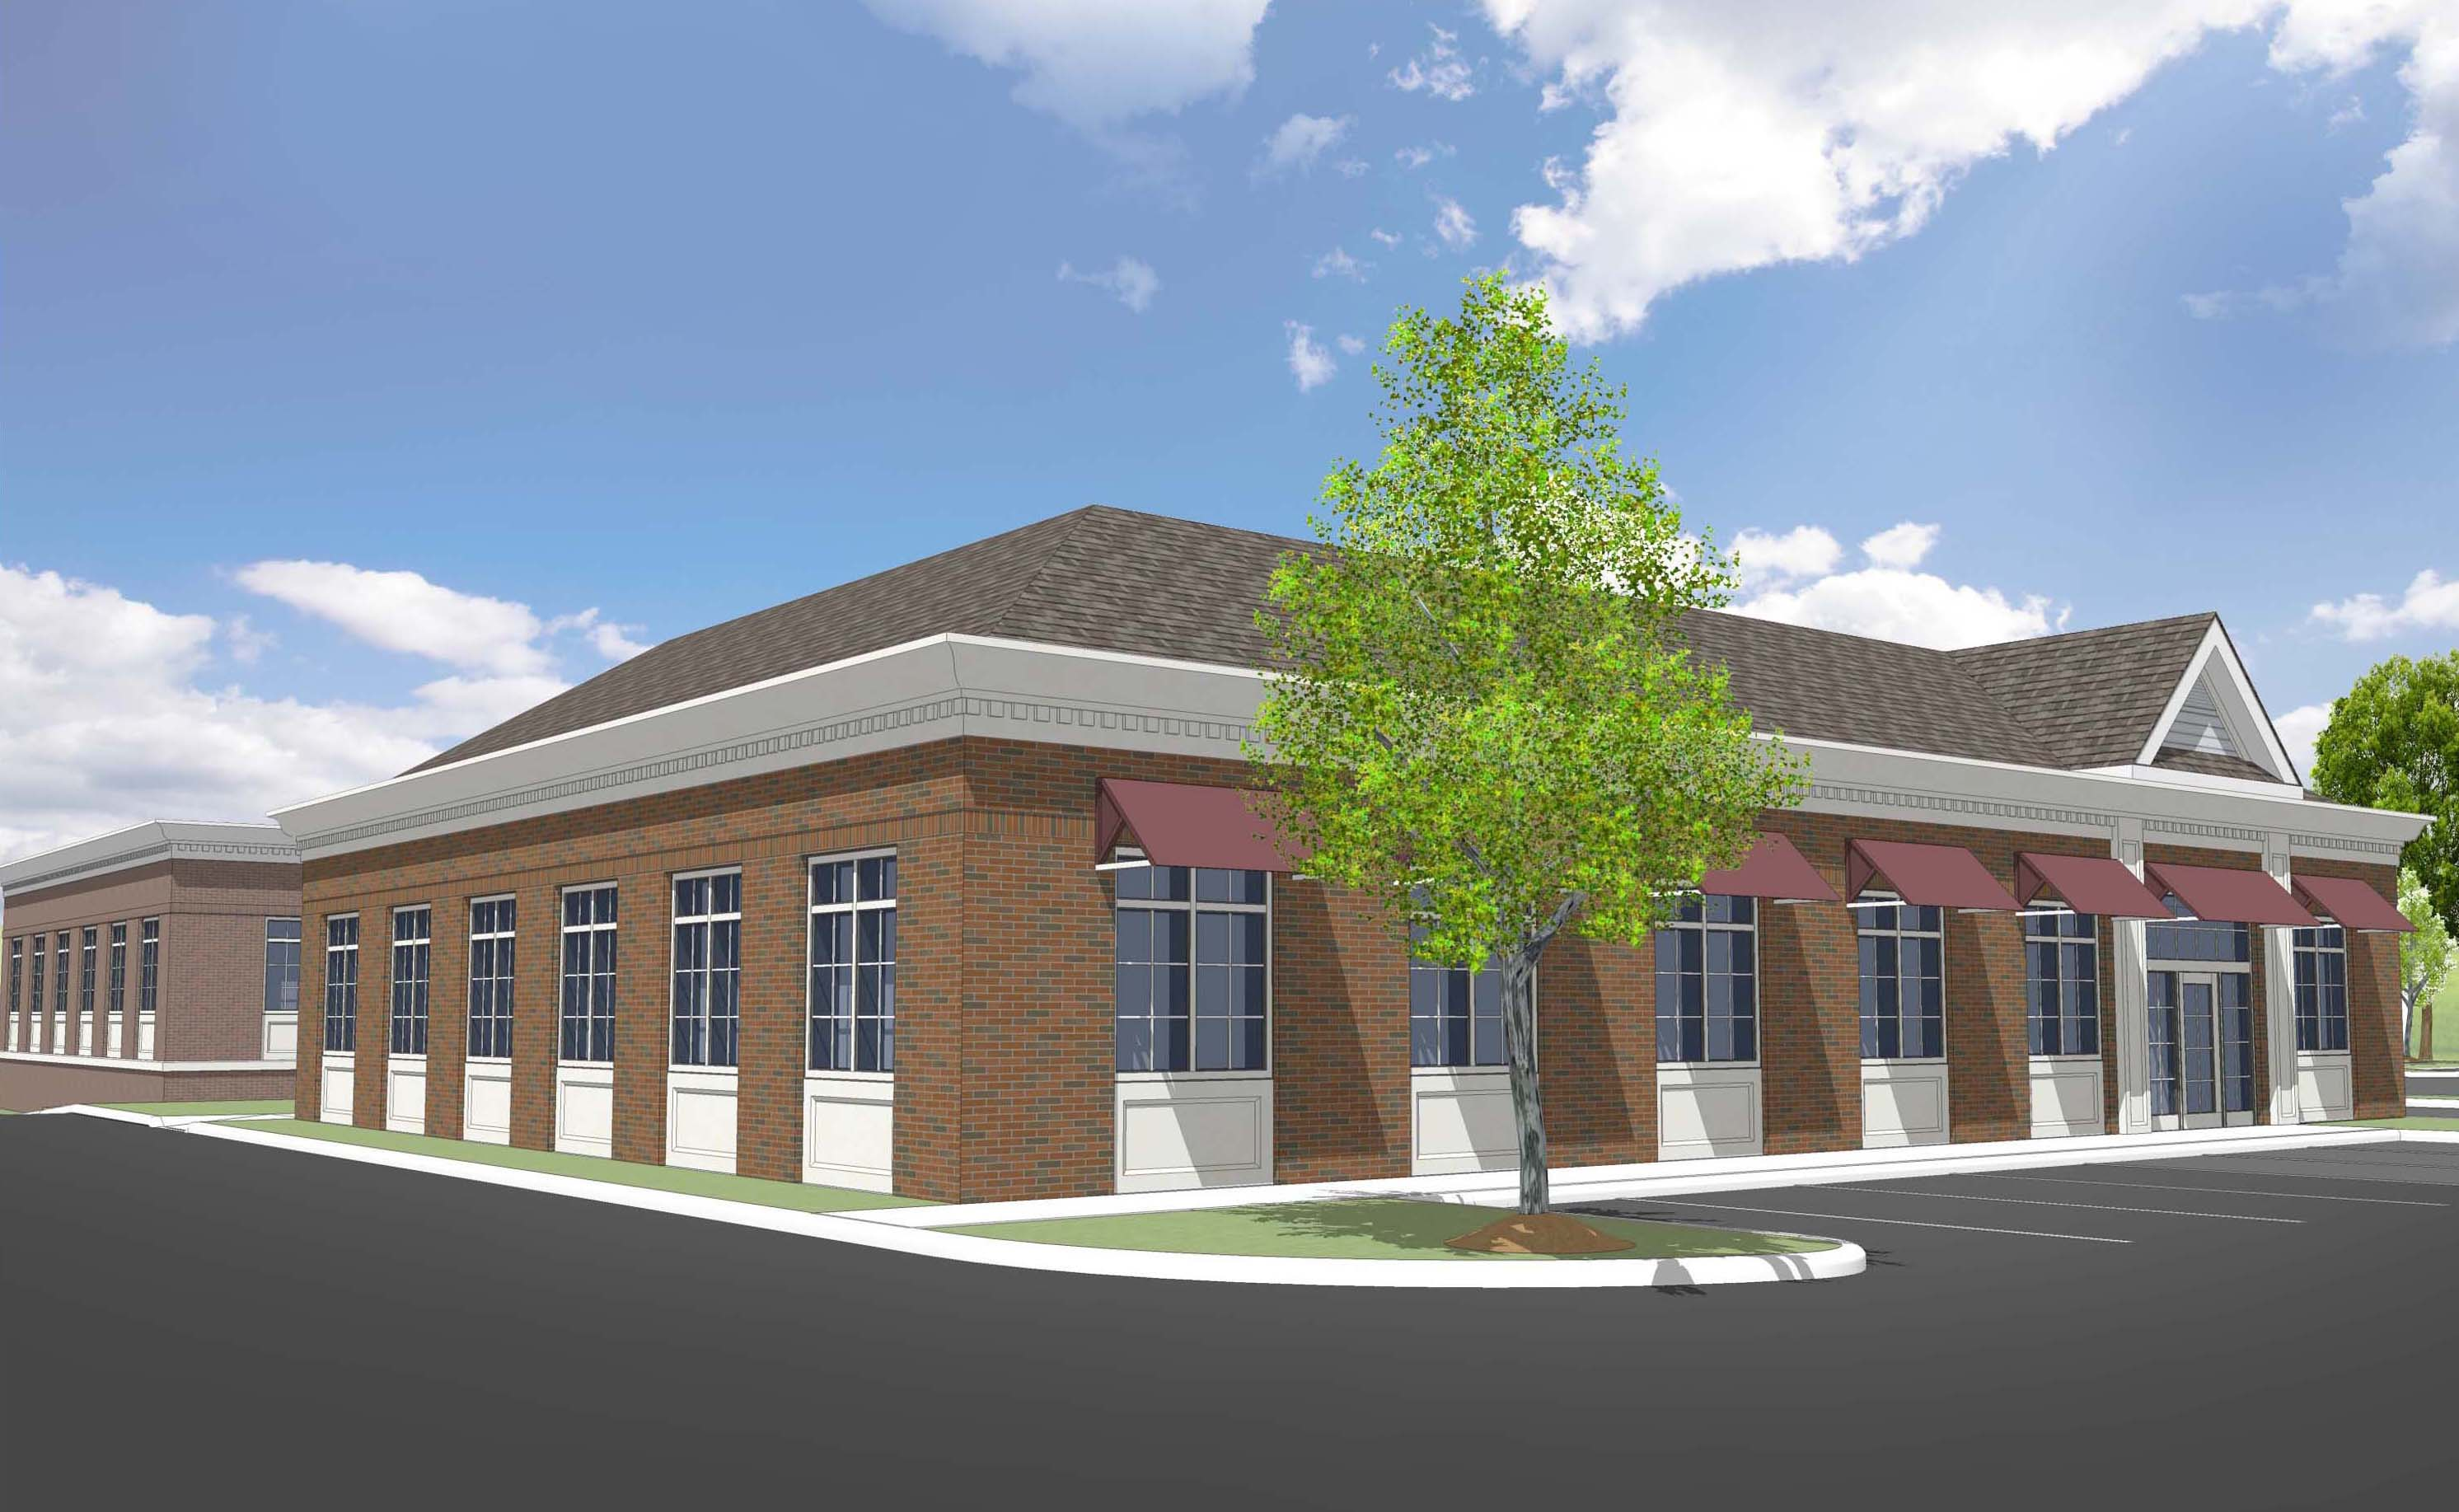 An artist's rendering of the new radiation oncology center under construction in Orchard Park.